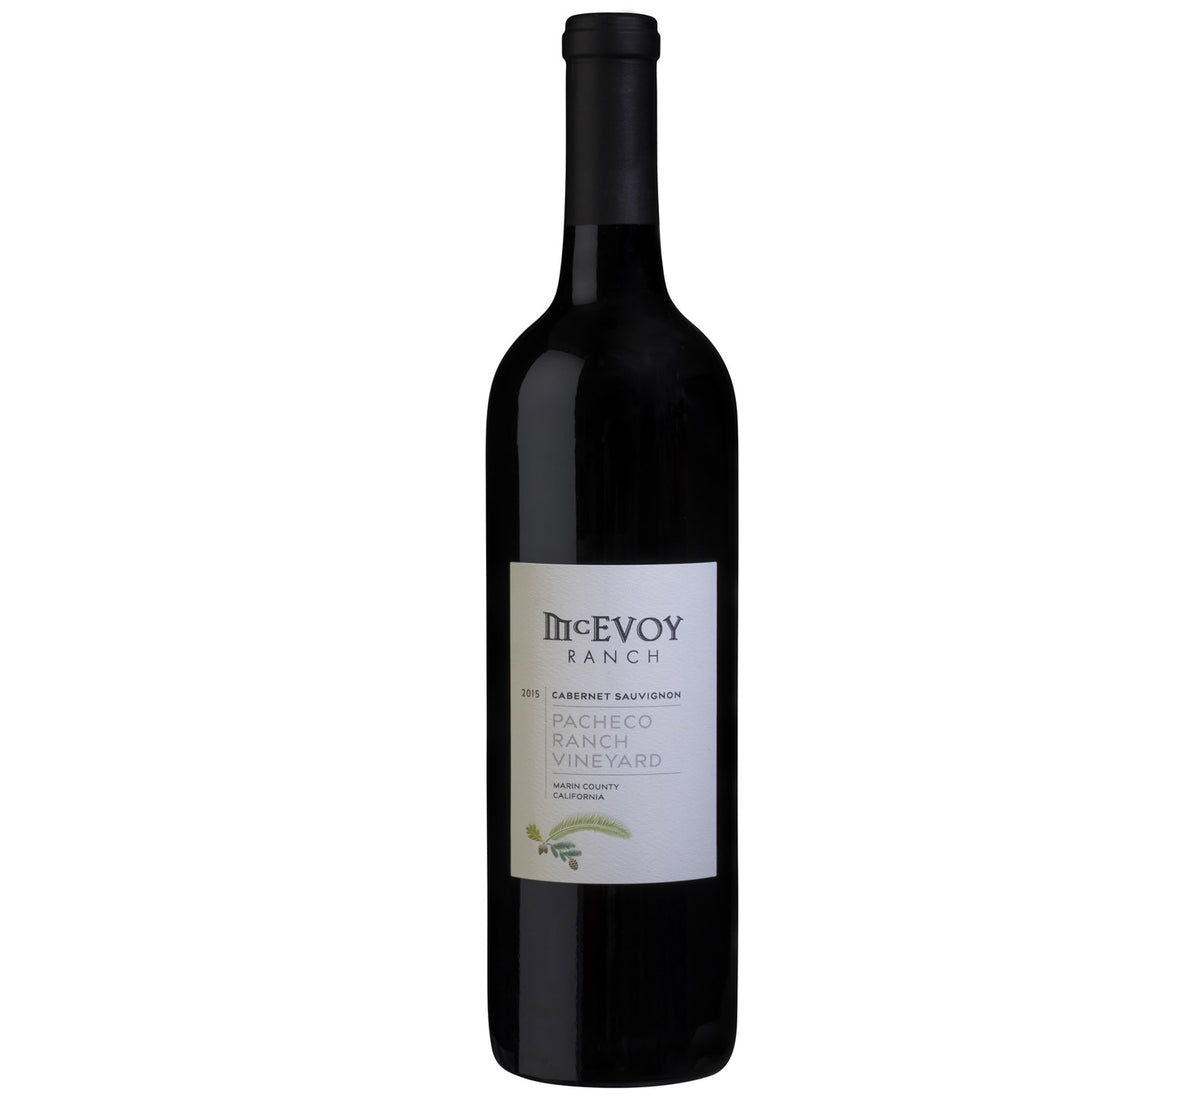 2015 Pacheco Ranch Vineyard Cabernet Sauvignon